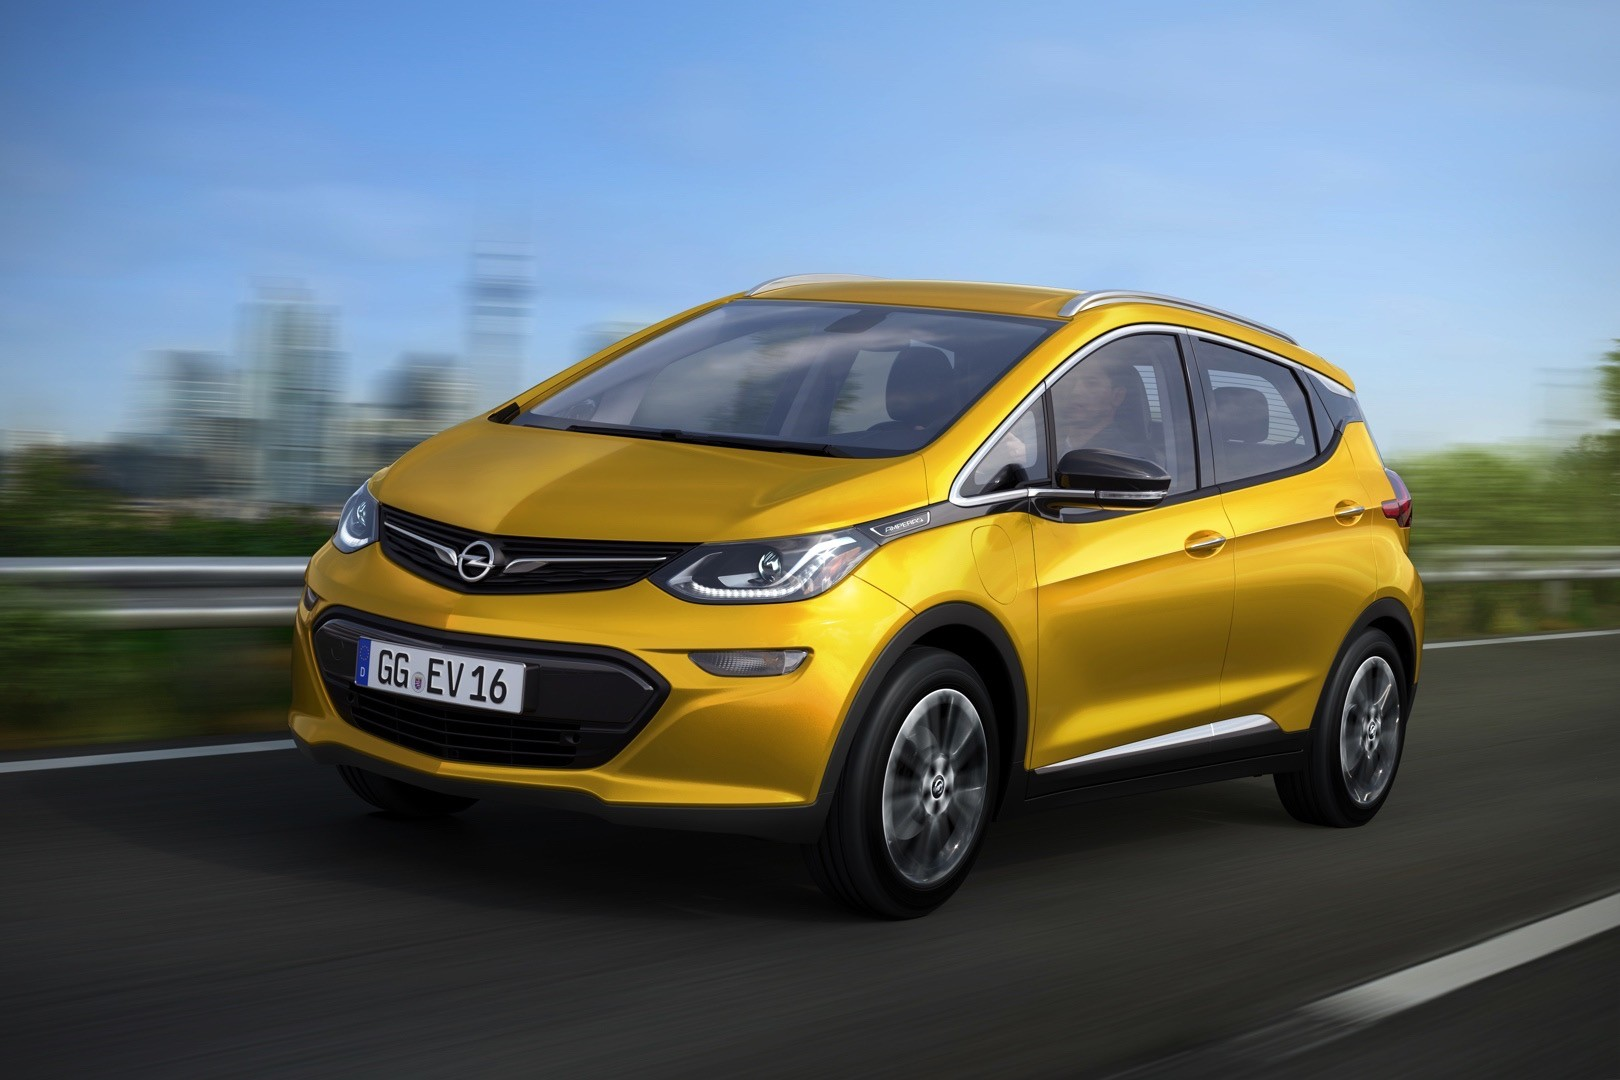 2017 Chevrolet Bolt Order Guide Confirms Lack of Adaptive Cruise ...